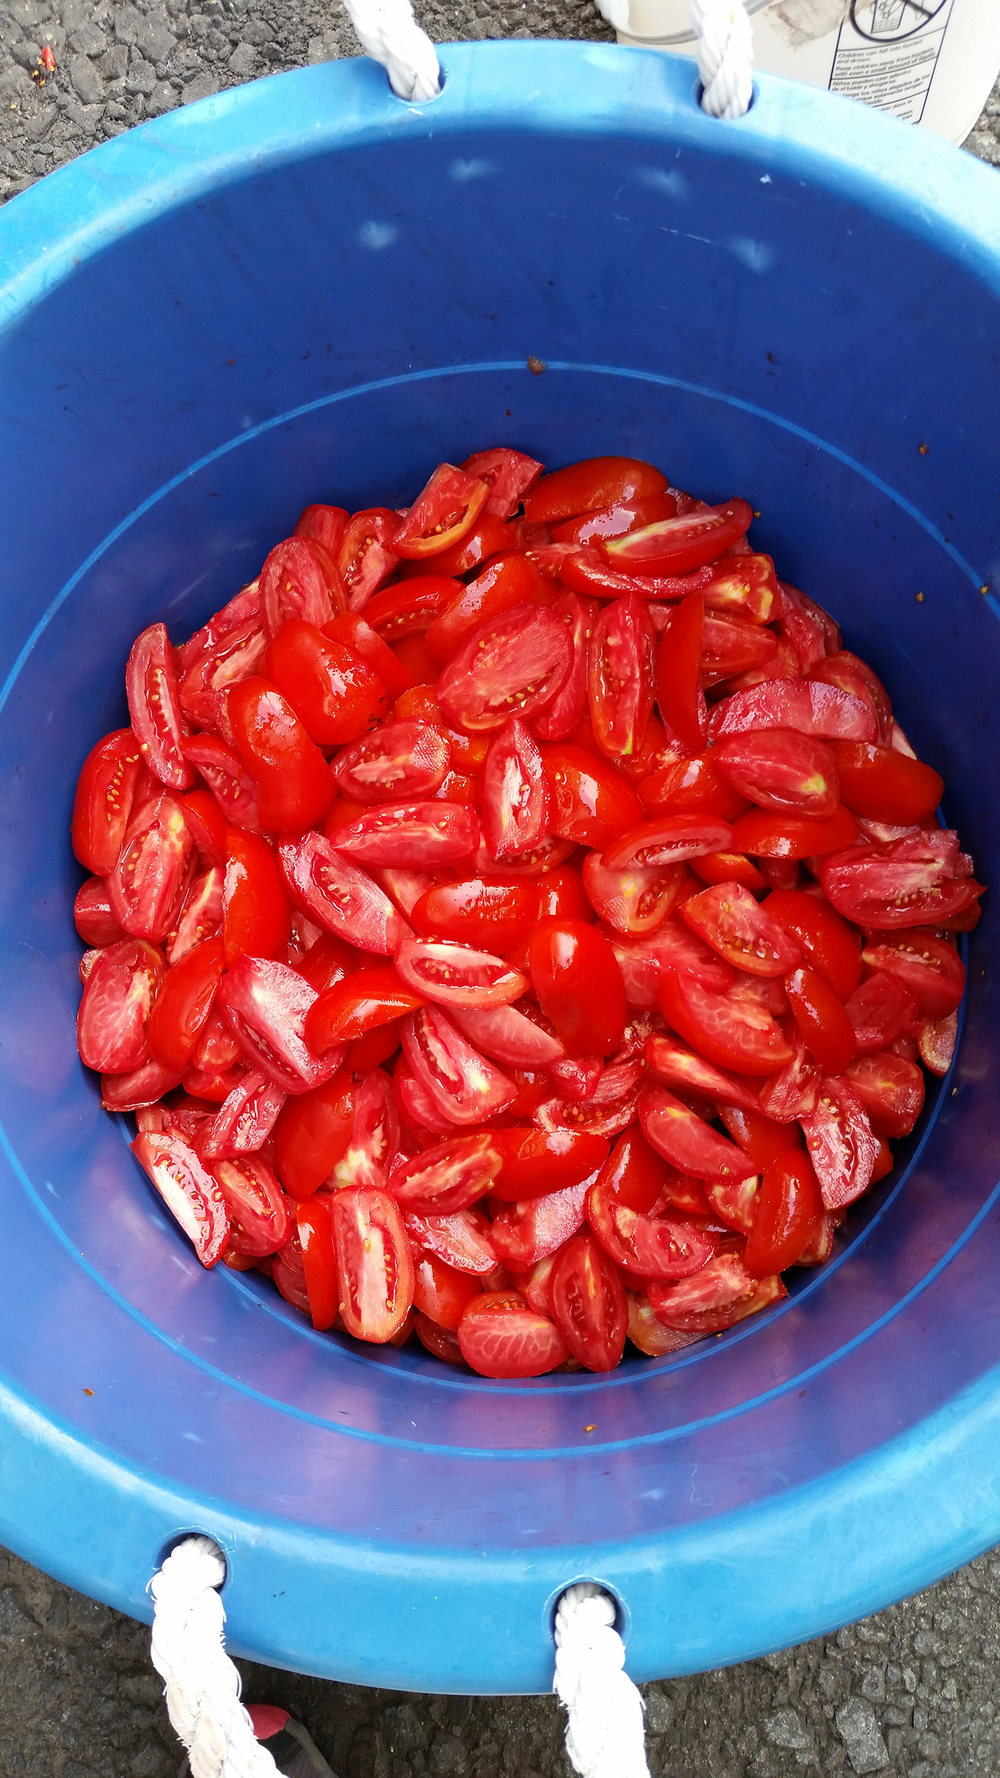 PC_Canning_Tomatoes_02.jpg